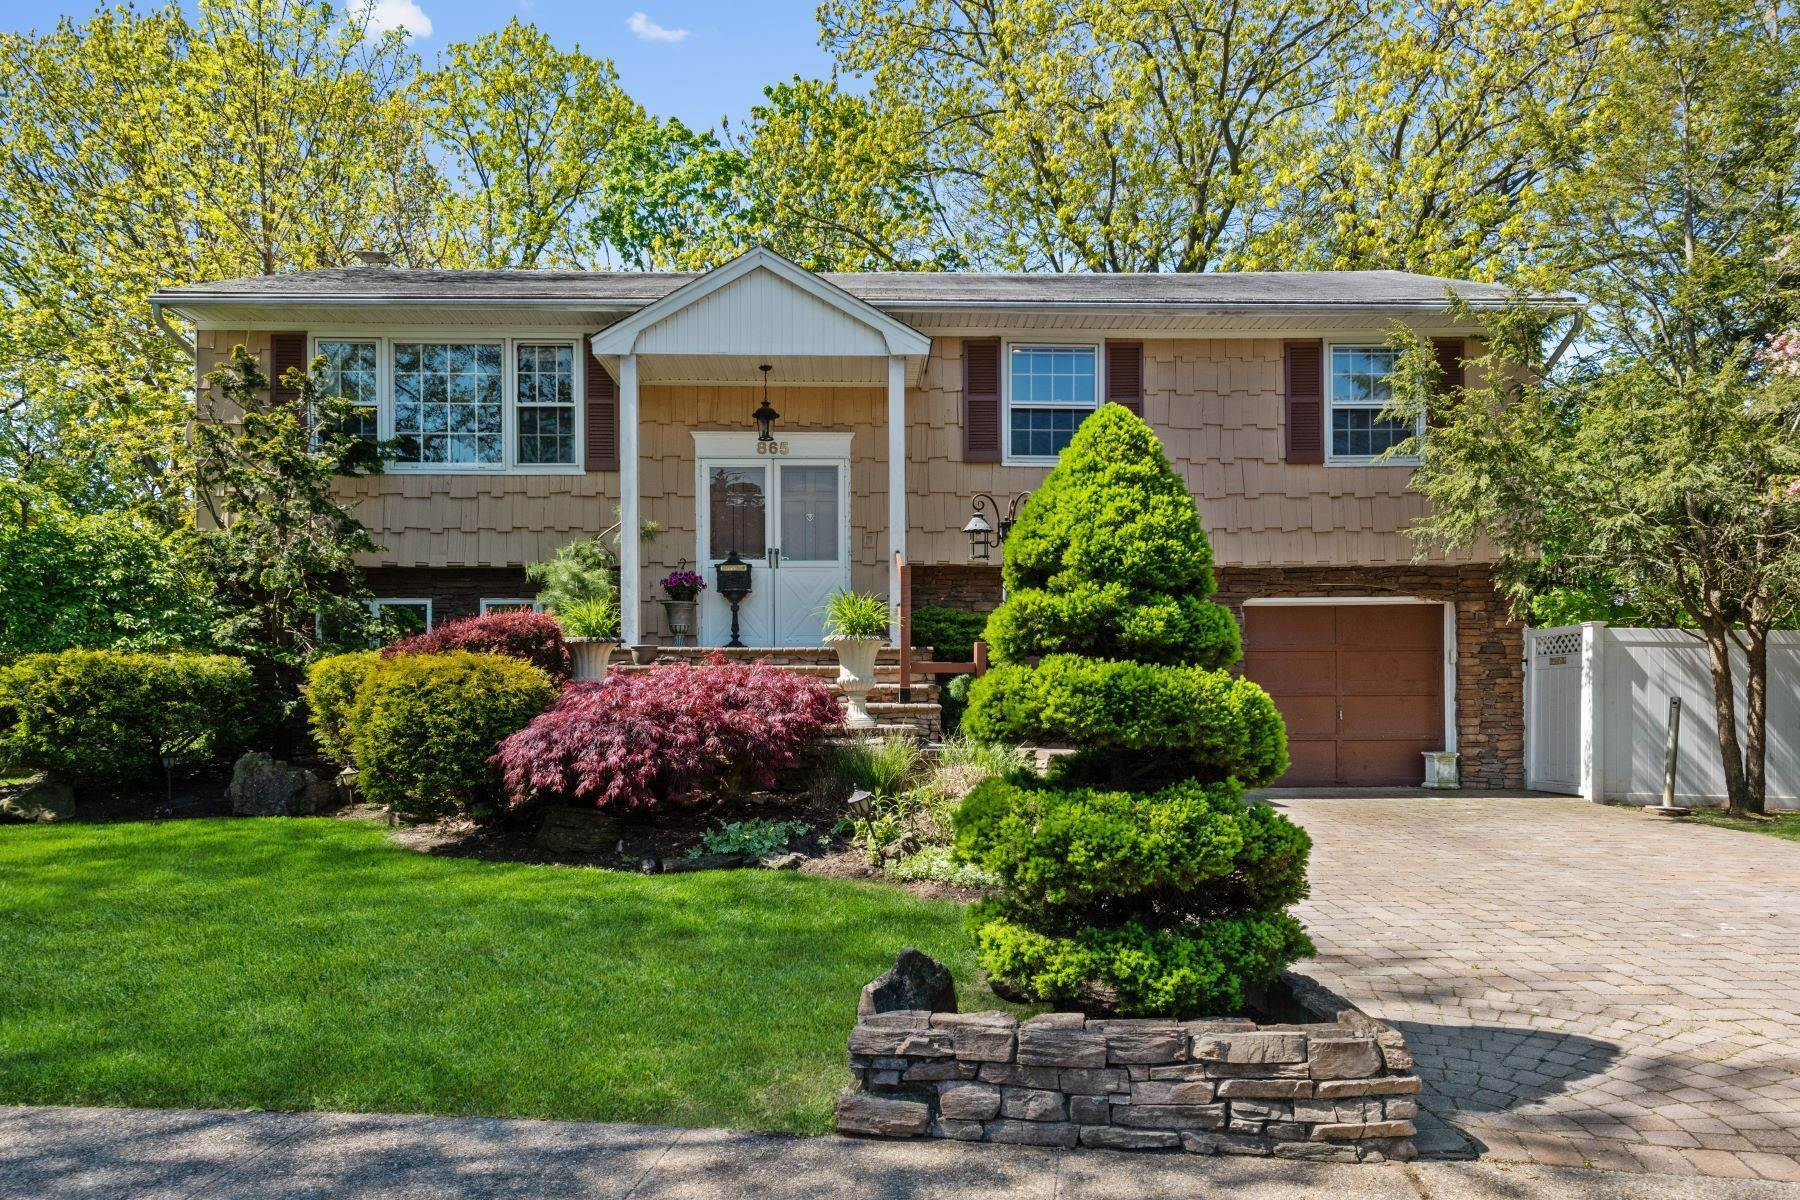 Single Family Homes for Sale at Westbury 865 Buckley Place Westbury, New York 11590 United States